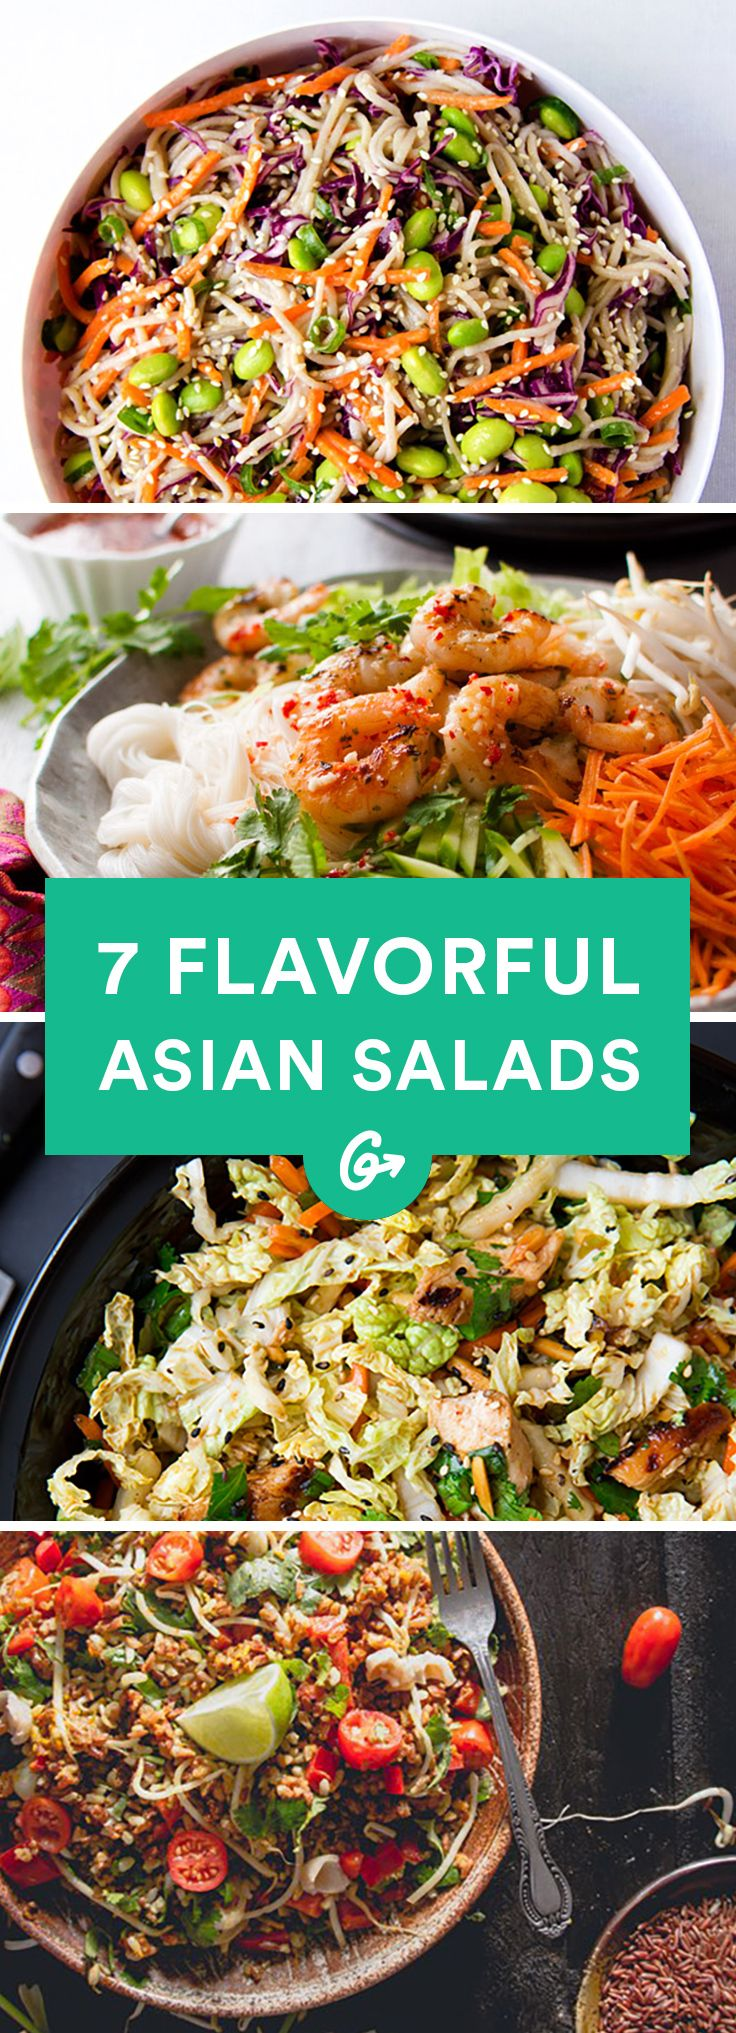 Shake up your lunch (or dinner) routine. #healthy #asian #salad #recipes http://greatist.com/eat/asian-salad-recipes-that-are-packed-with-flavor